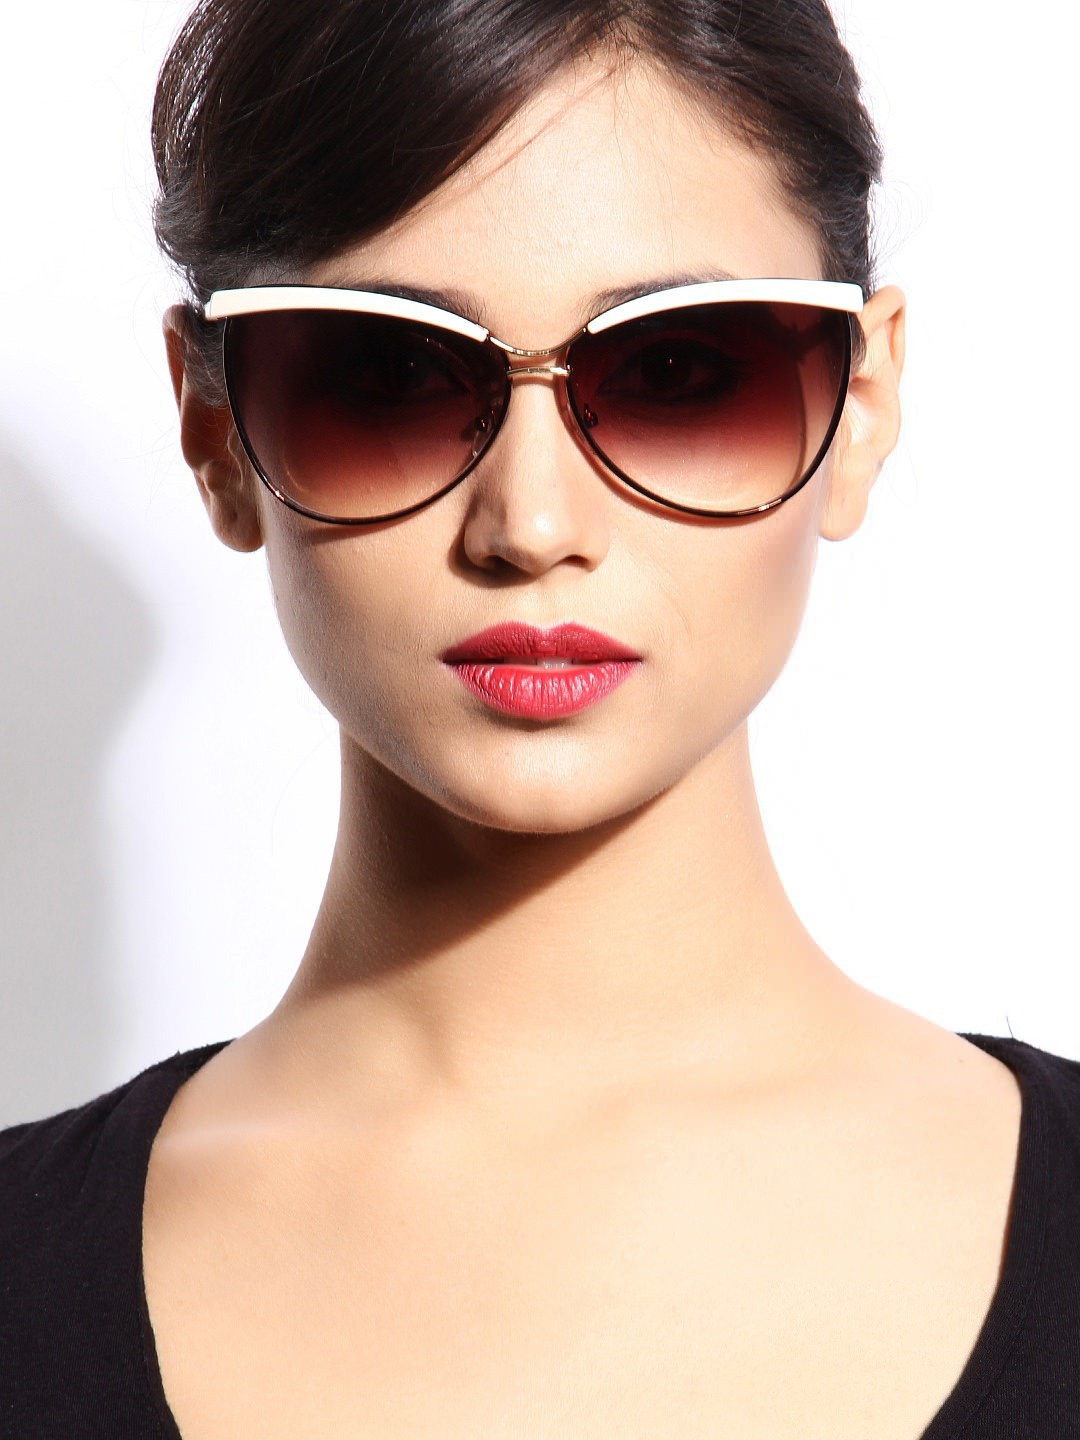 Check out the sunglasses that every woman should own